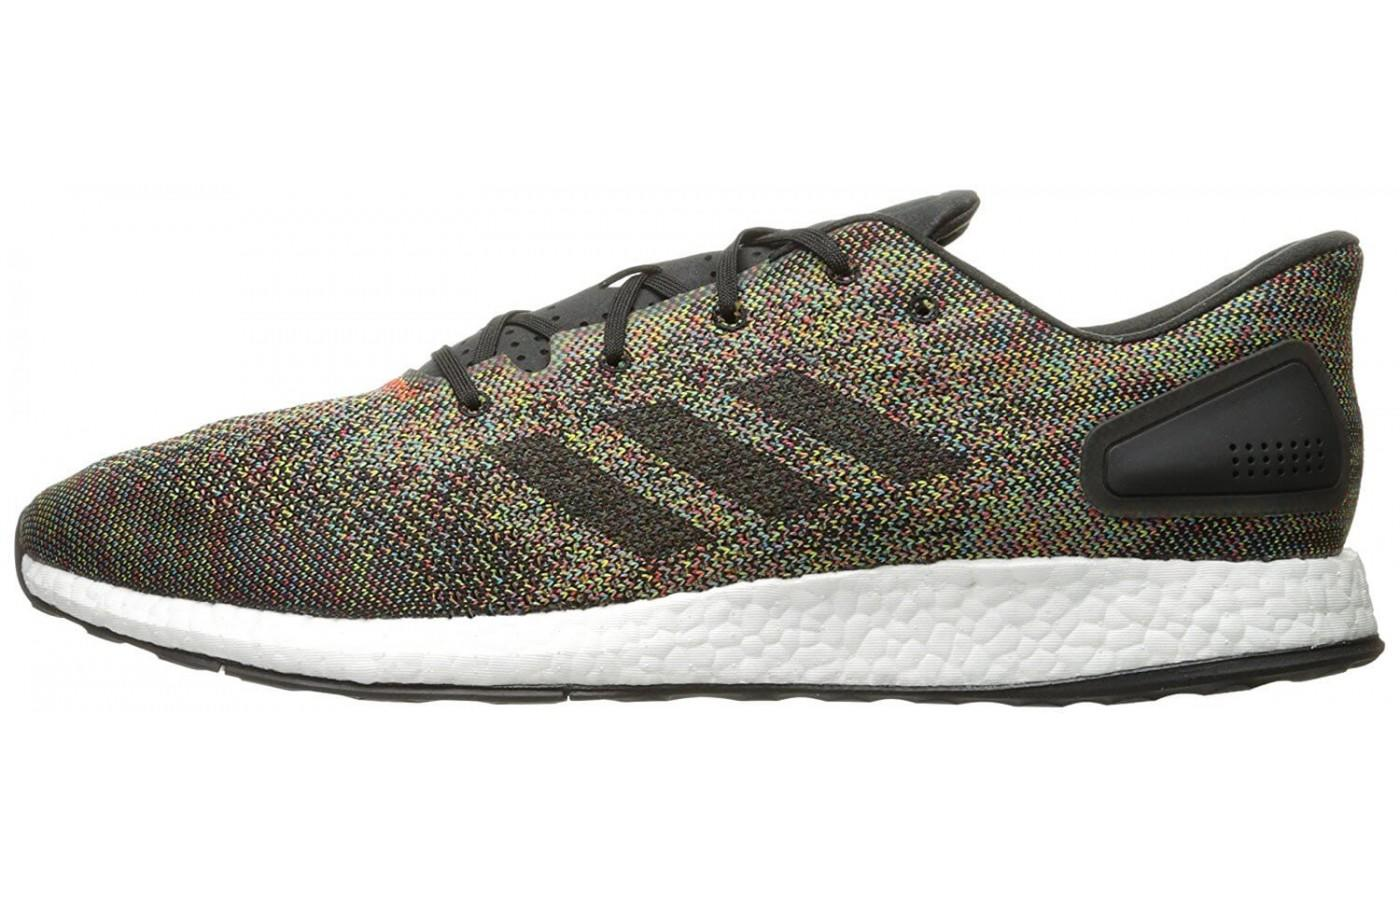 6d6edcbe4250f ... Adidas PureBOOST DPR LTD has unique color designs ...